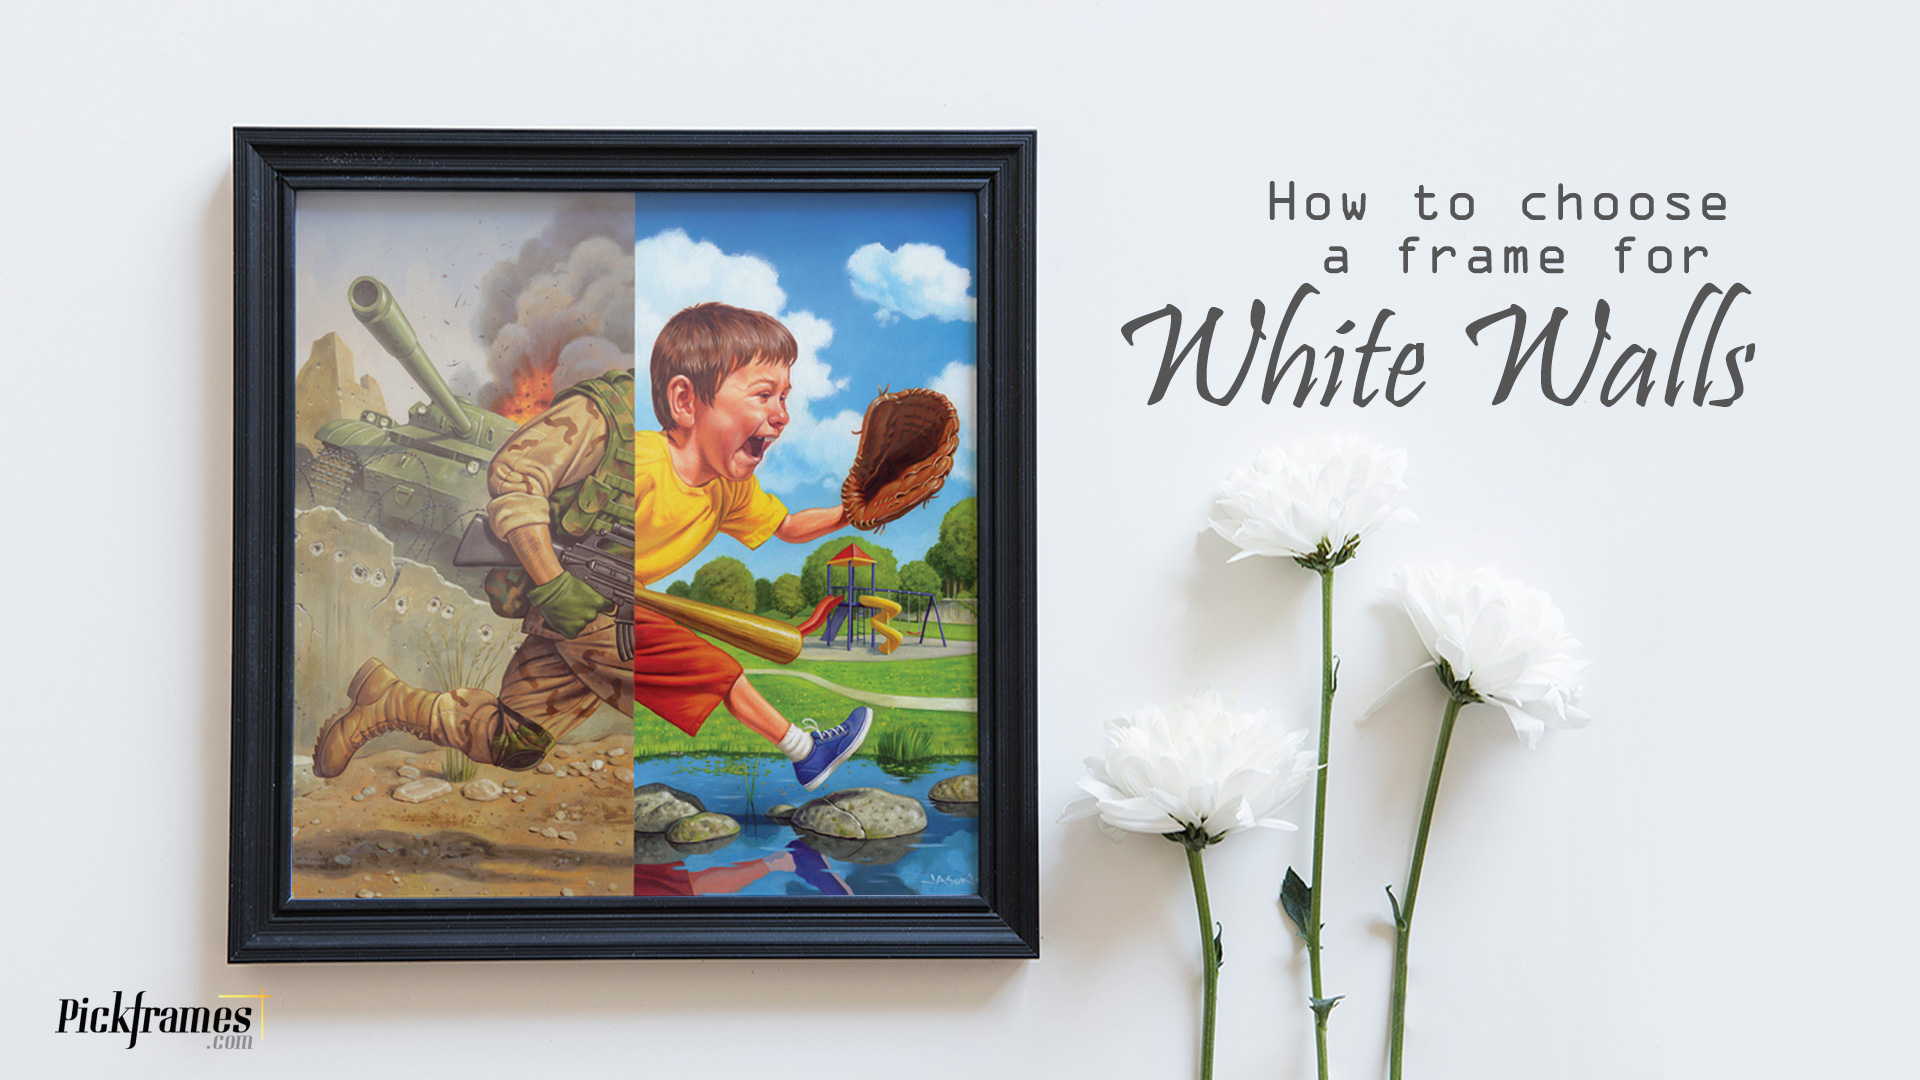 How to choose a frame